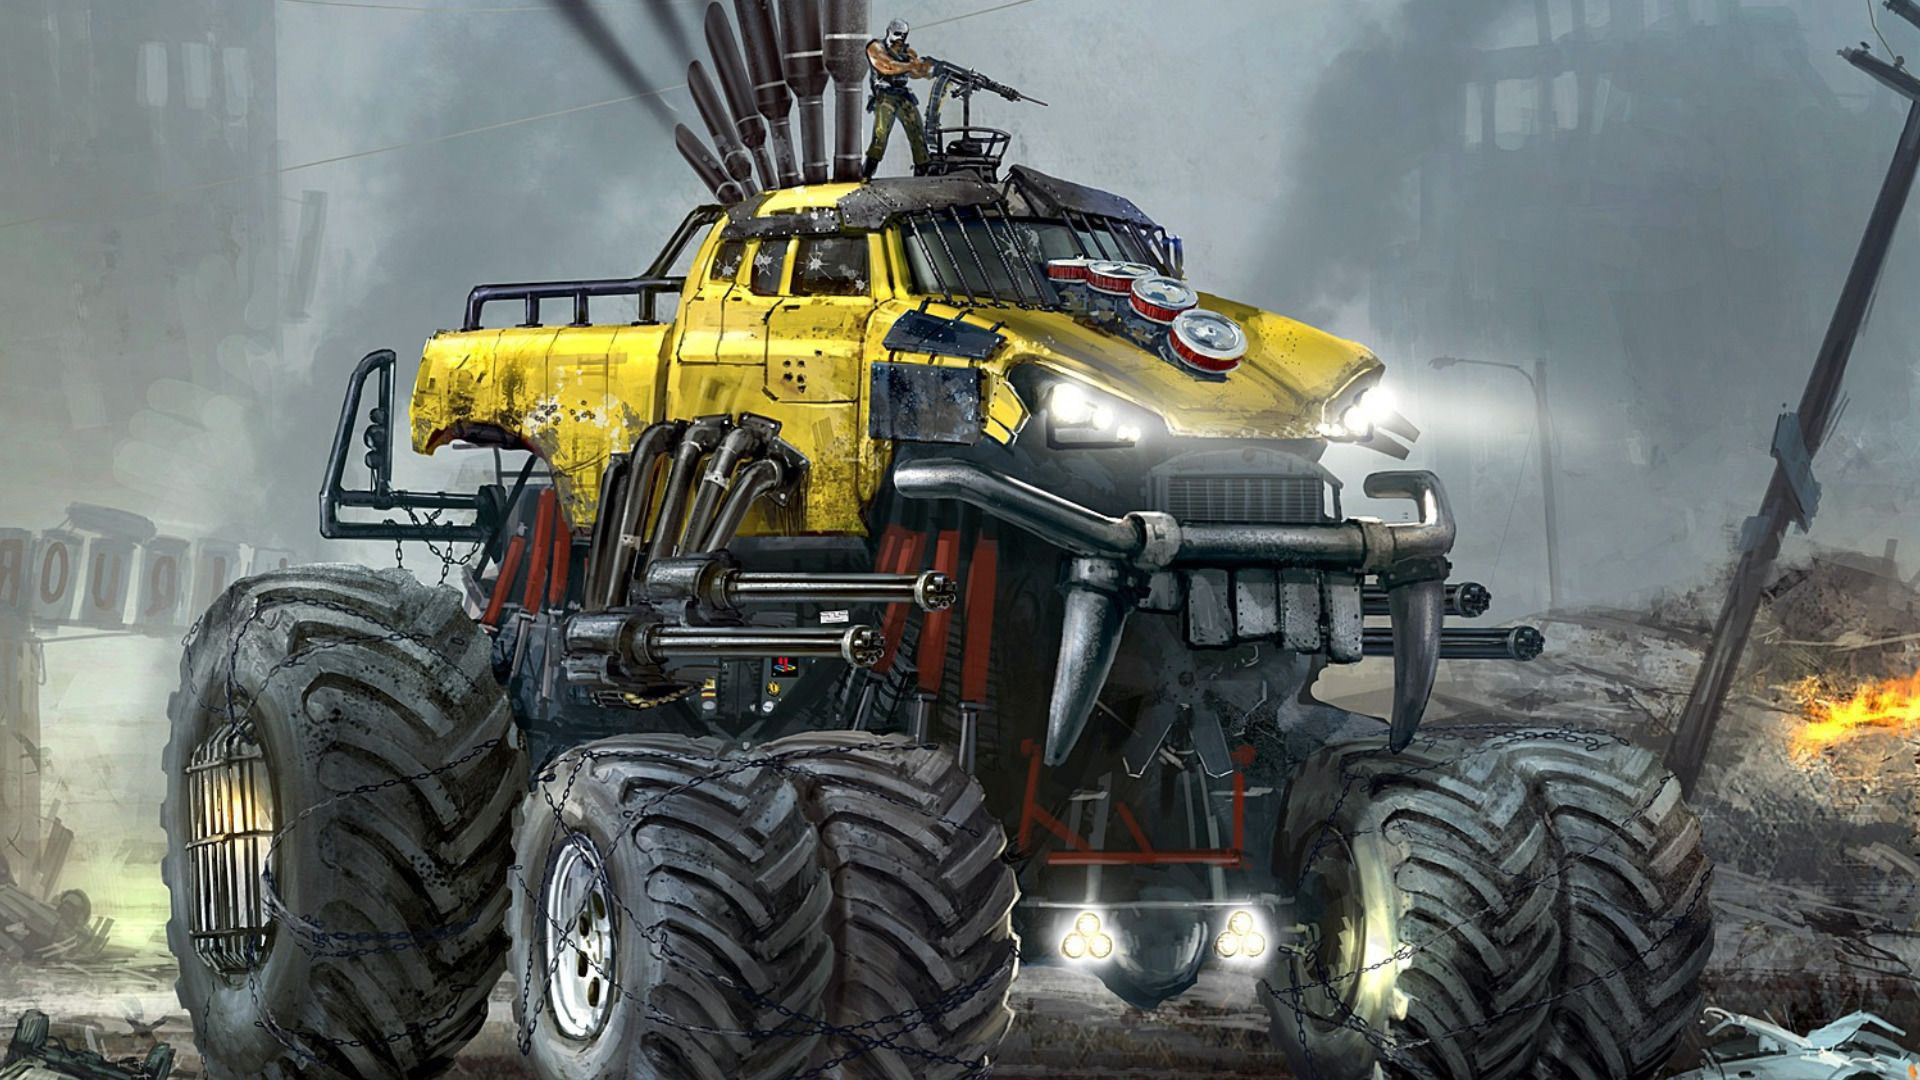 Res: 1920x1080, Monster Truck Wallpapers 6 - 1920 X 1080